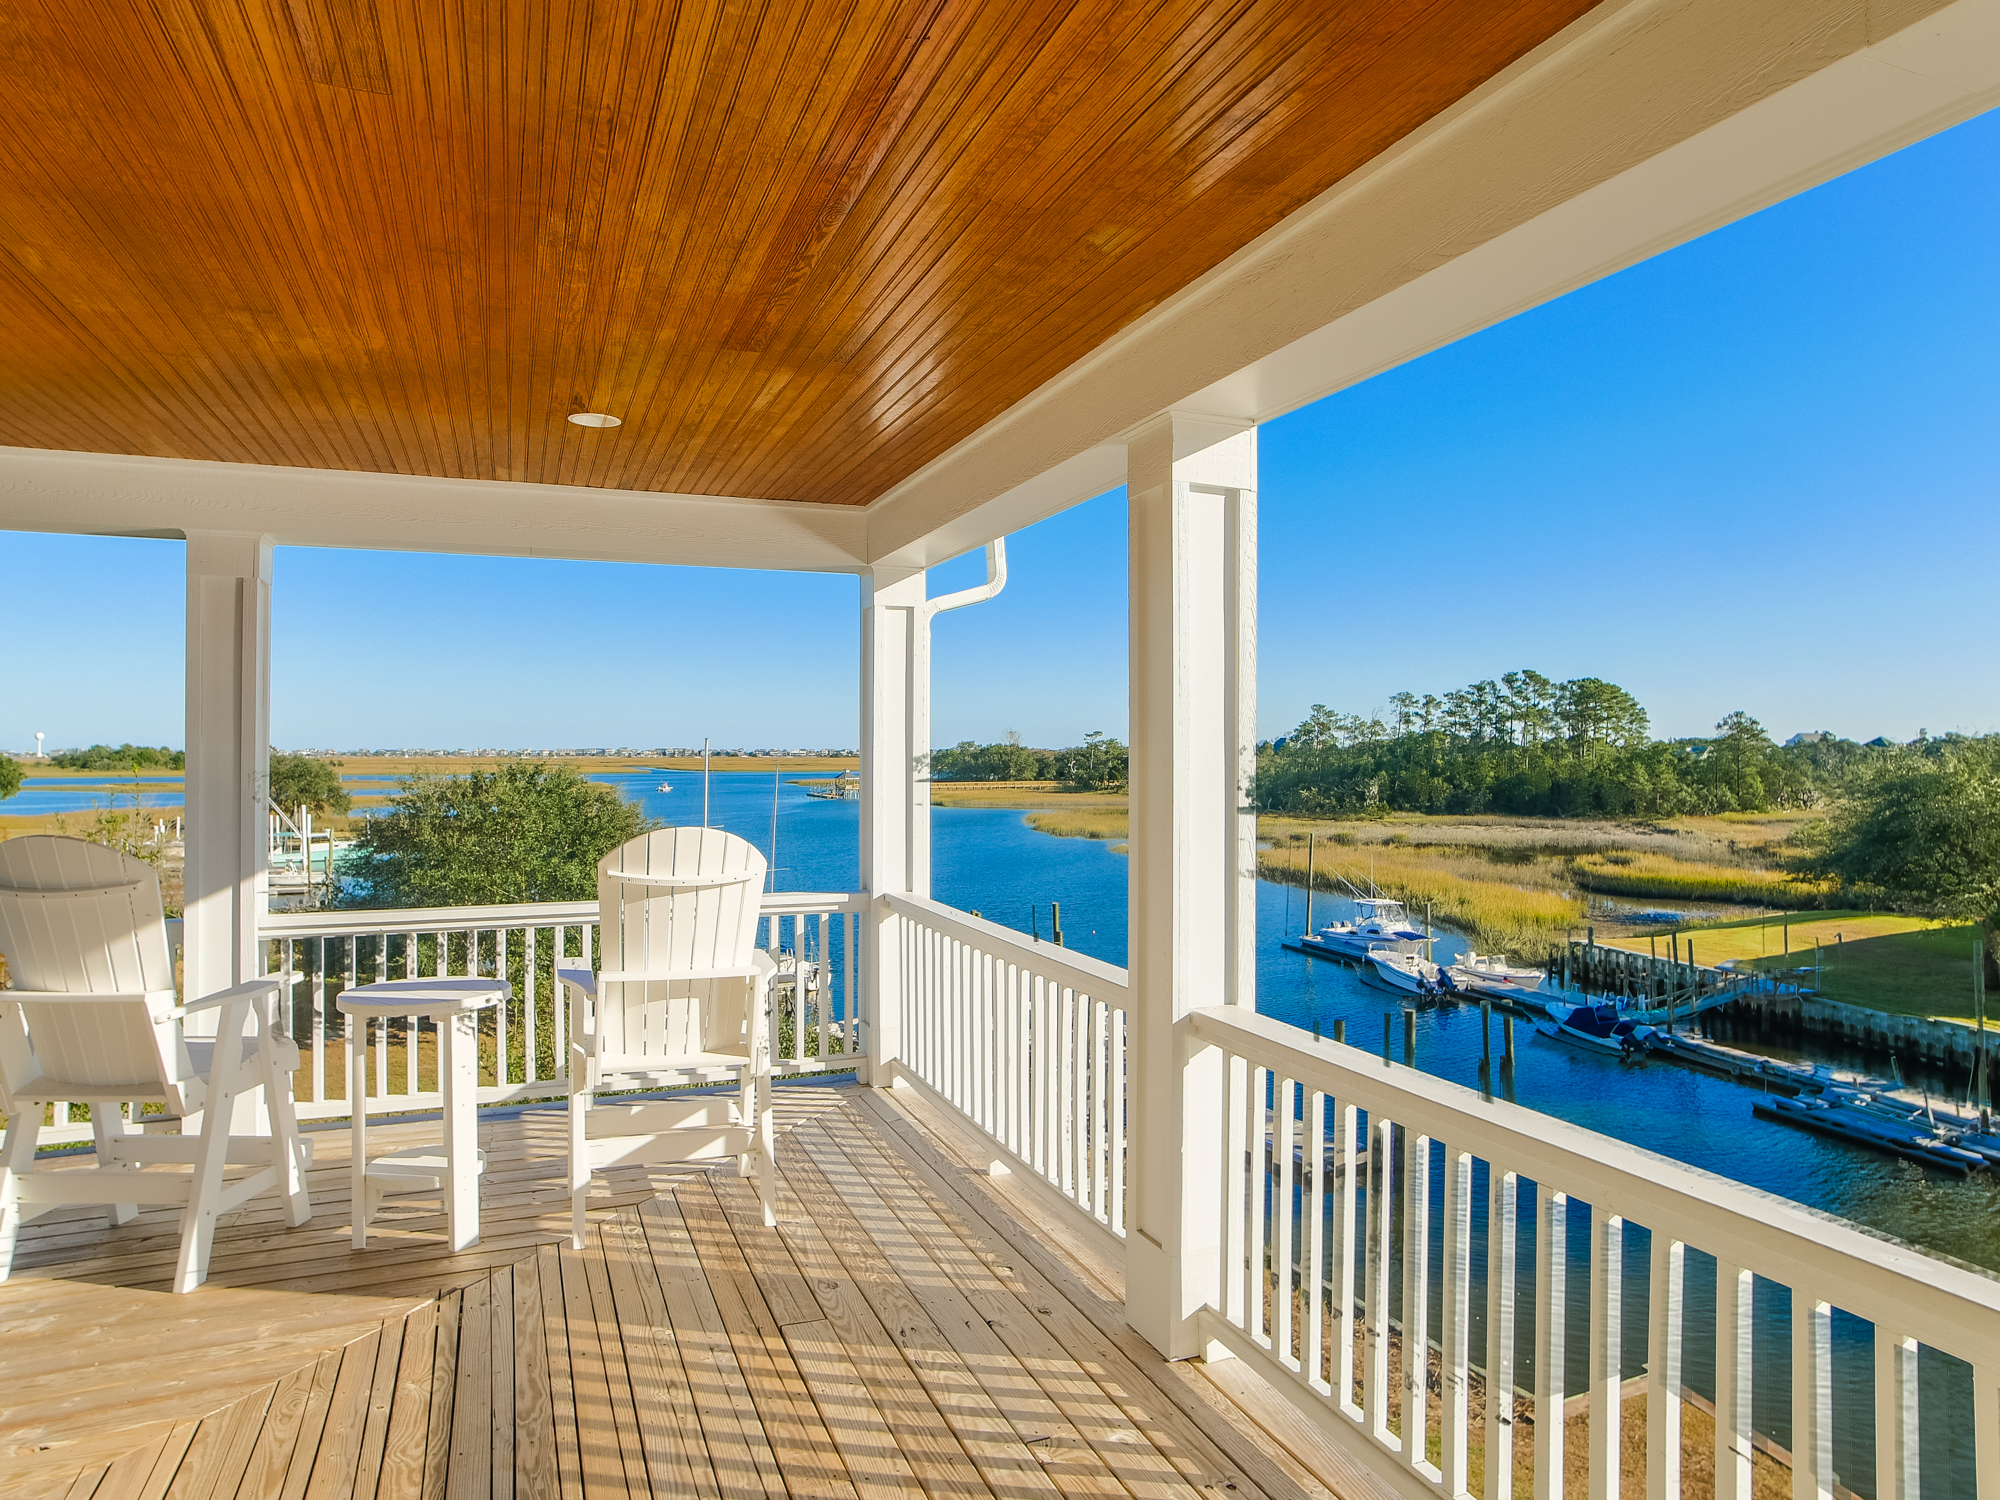 Luxury wilmington nc homes for sale luxury real estate for Small luxury homes for sale